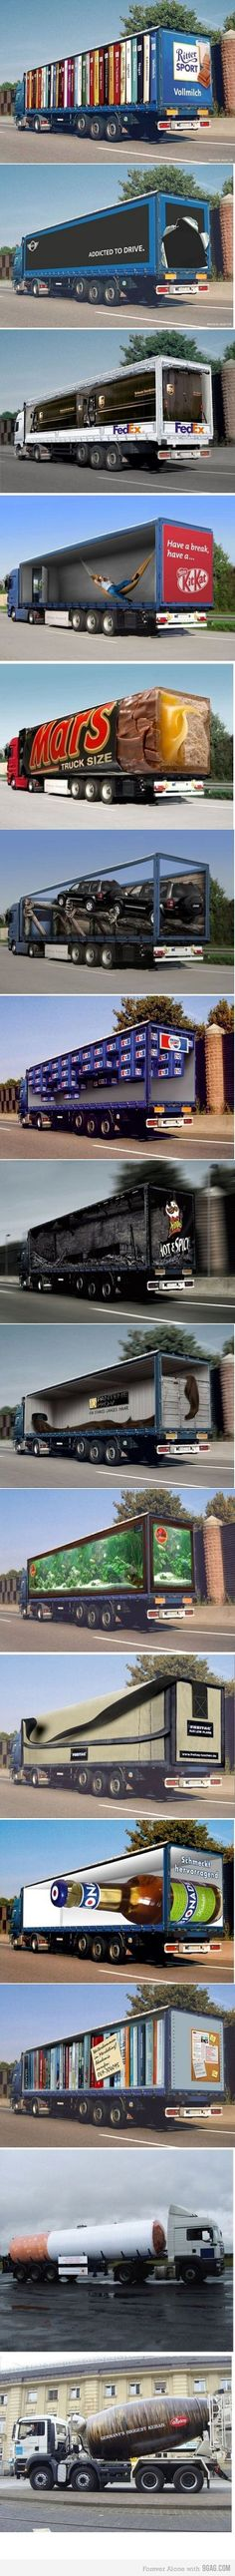 Esempi di ambient marketing sui camion. Geniali!